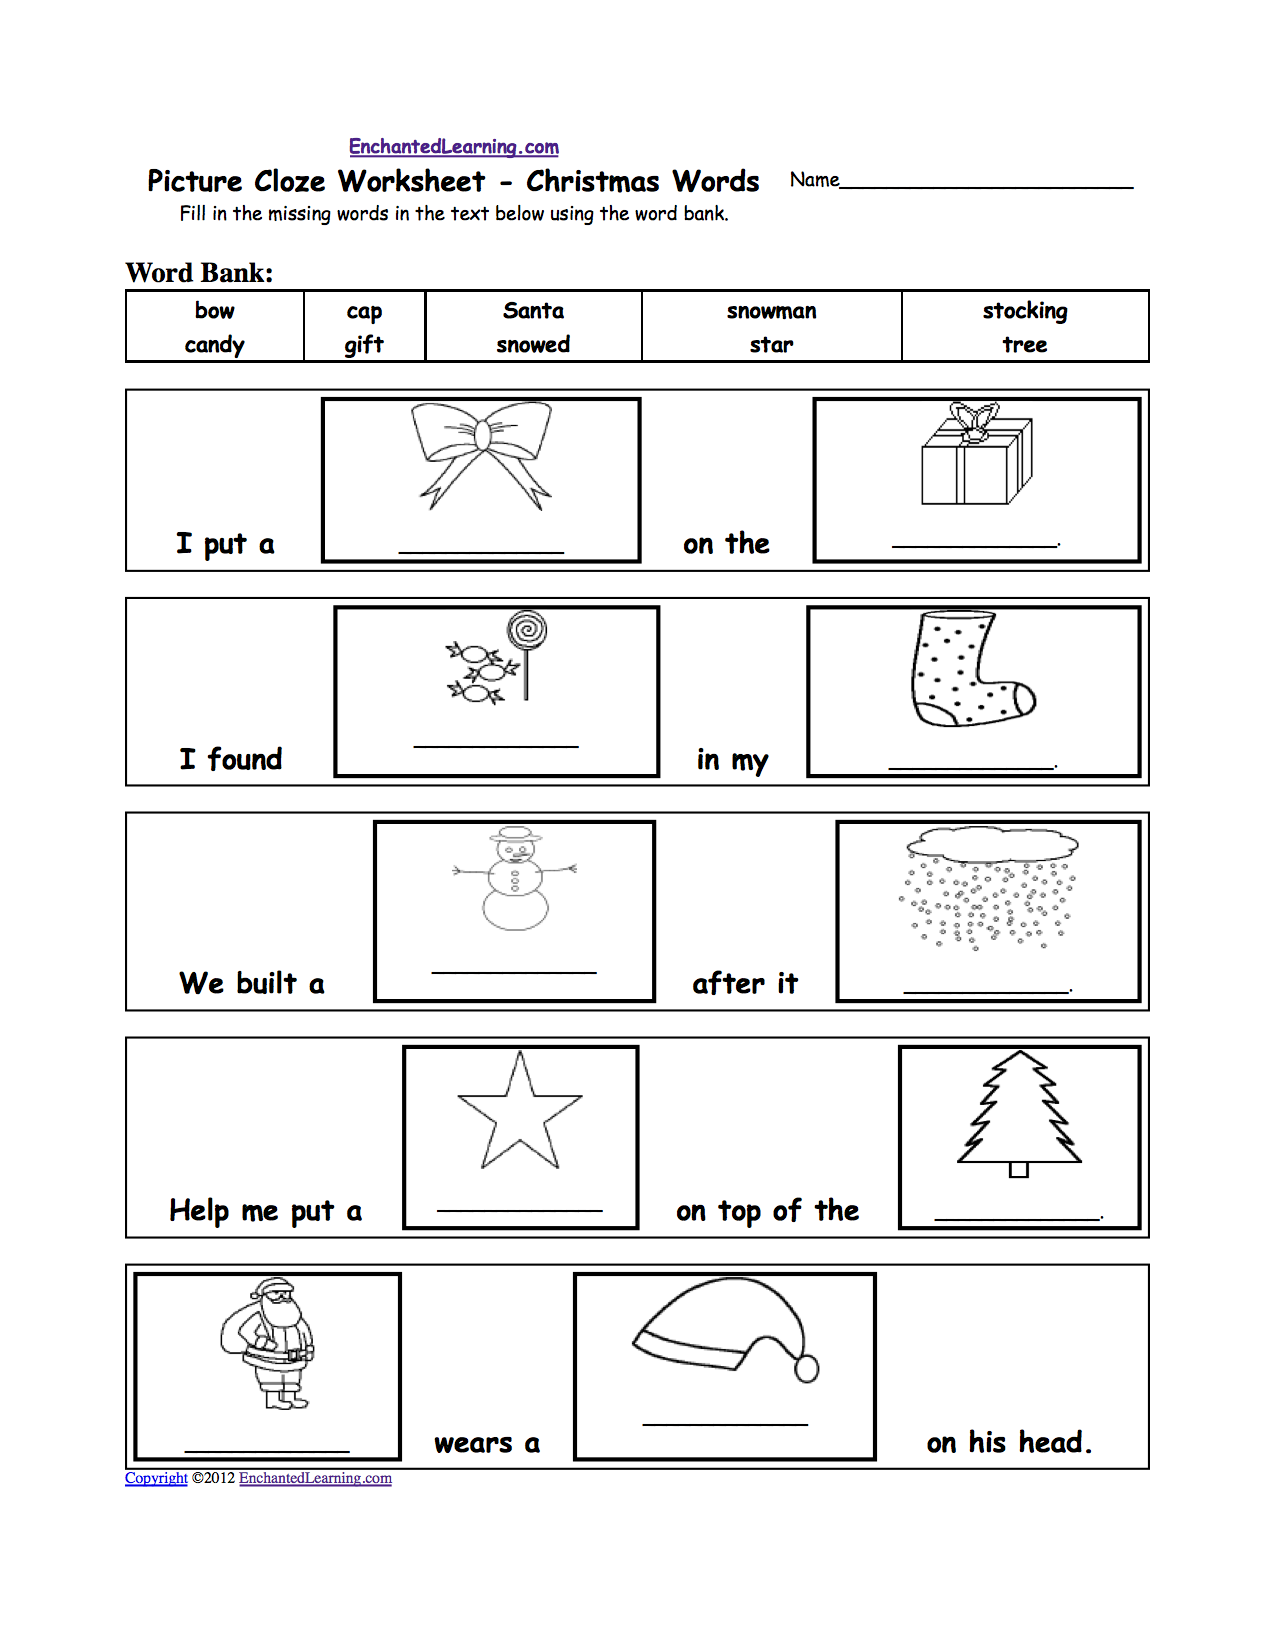 Worksheets Cloze Worksheets picture cloze worksheet holiday and seasons words cloze